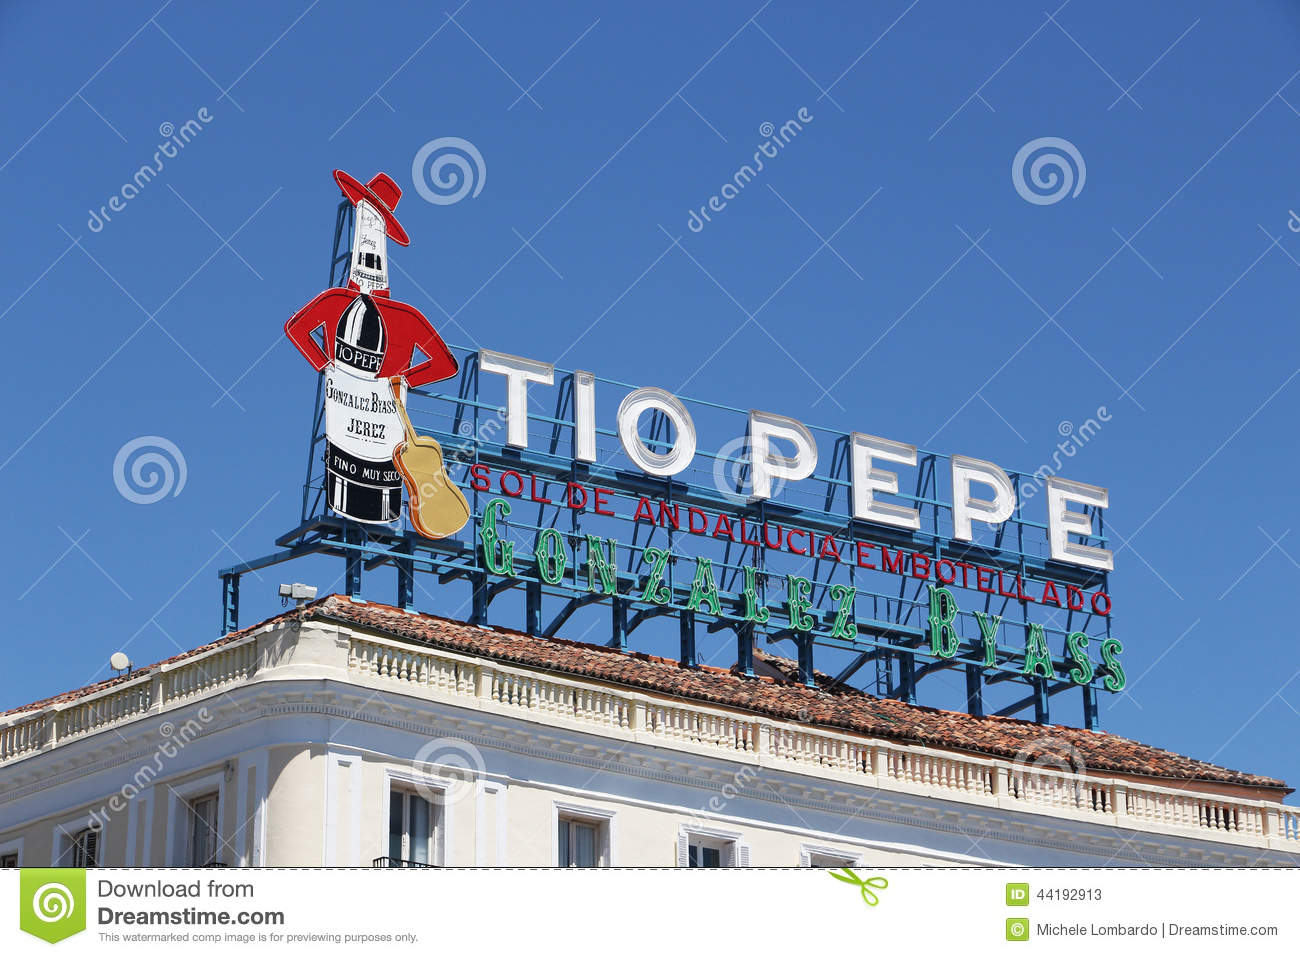 Sign Of Tio Pepe Madrid Editorial Stock Photo Image